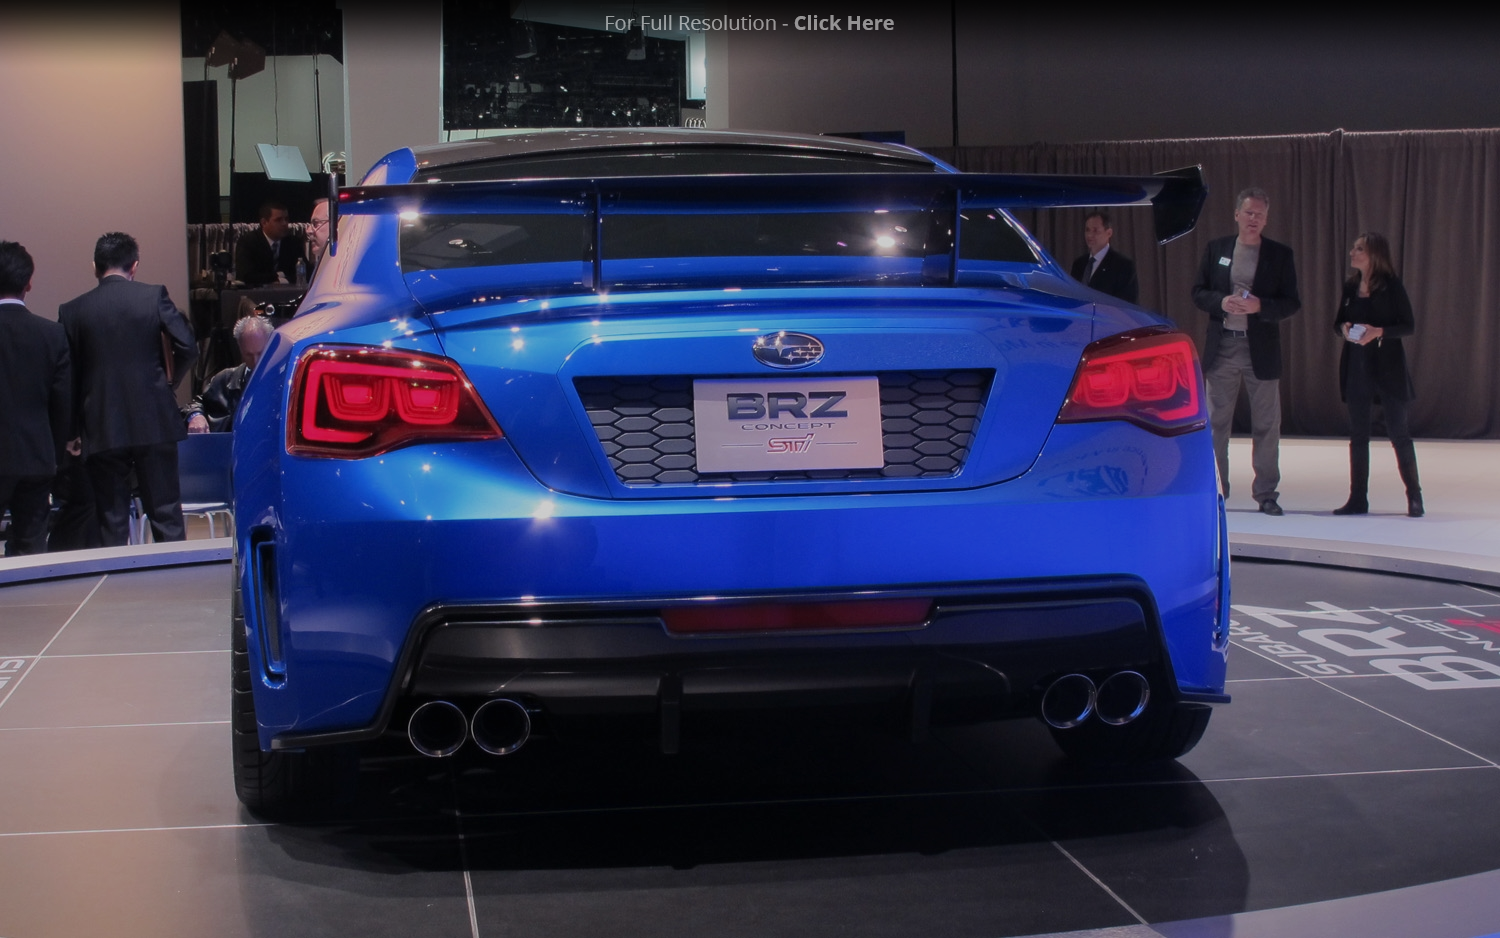 2011 Subaru BRZ STI Concept photo - 2